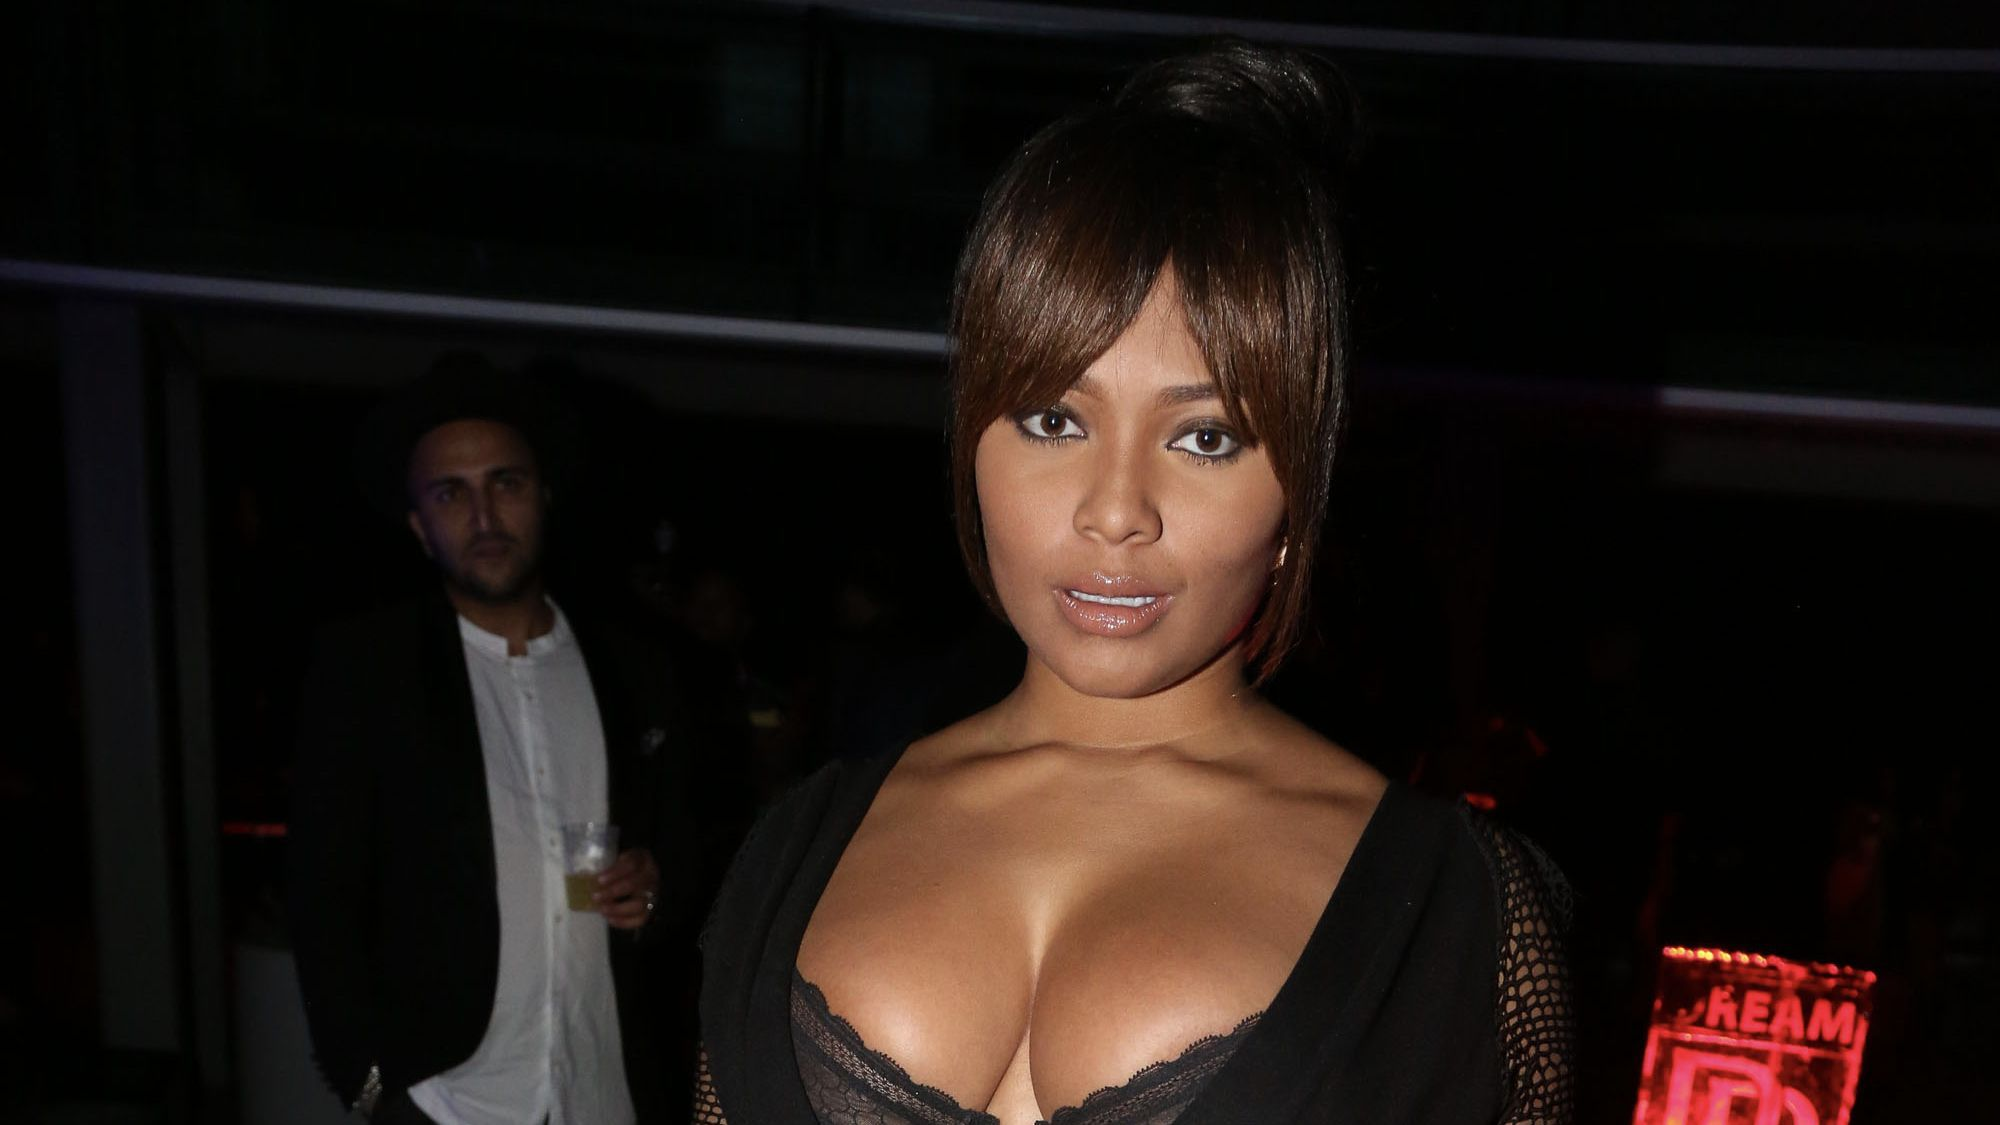 Hacked Teairra Mari nude (39 photo), Ass, Sideboobs, Boobs, braless 2020